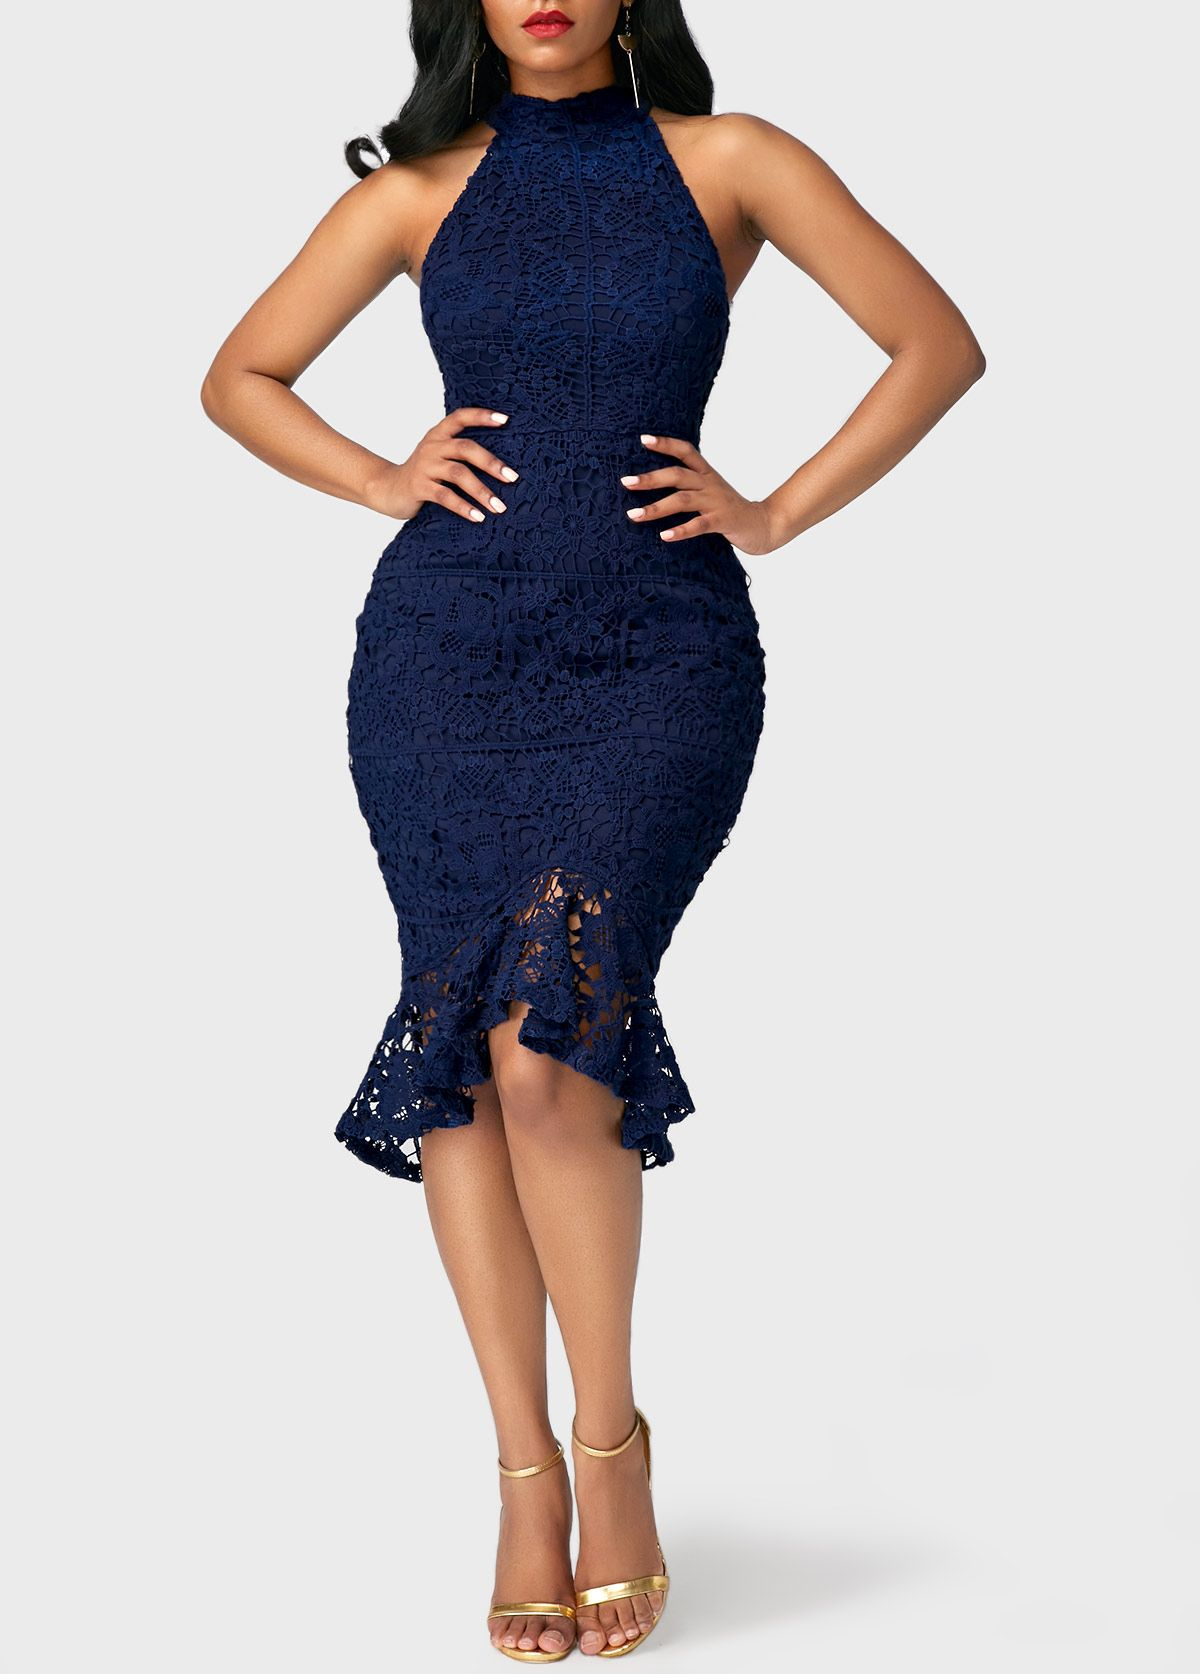 Sleeveless Navy Blue Asymmetric Hem Lace Dress On Sale Only